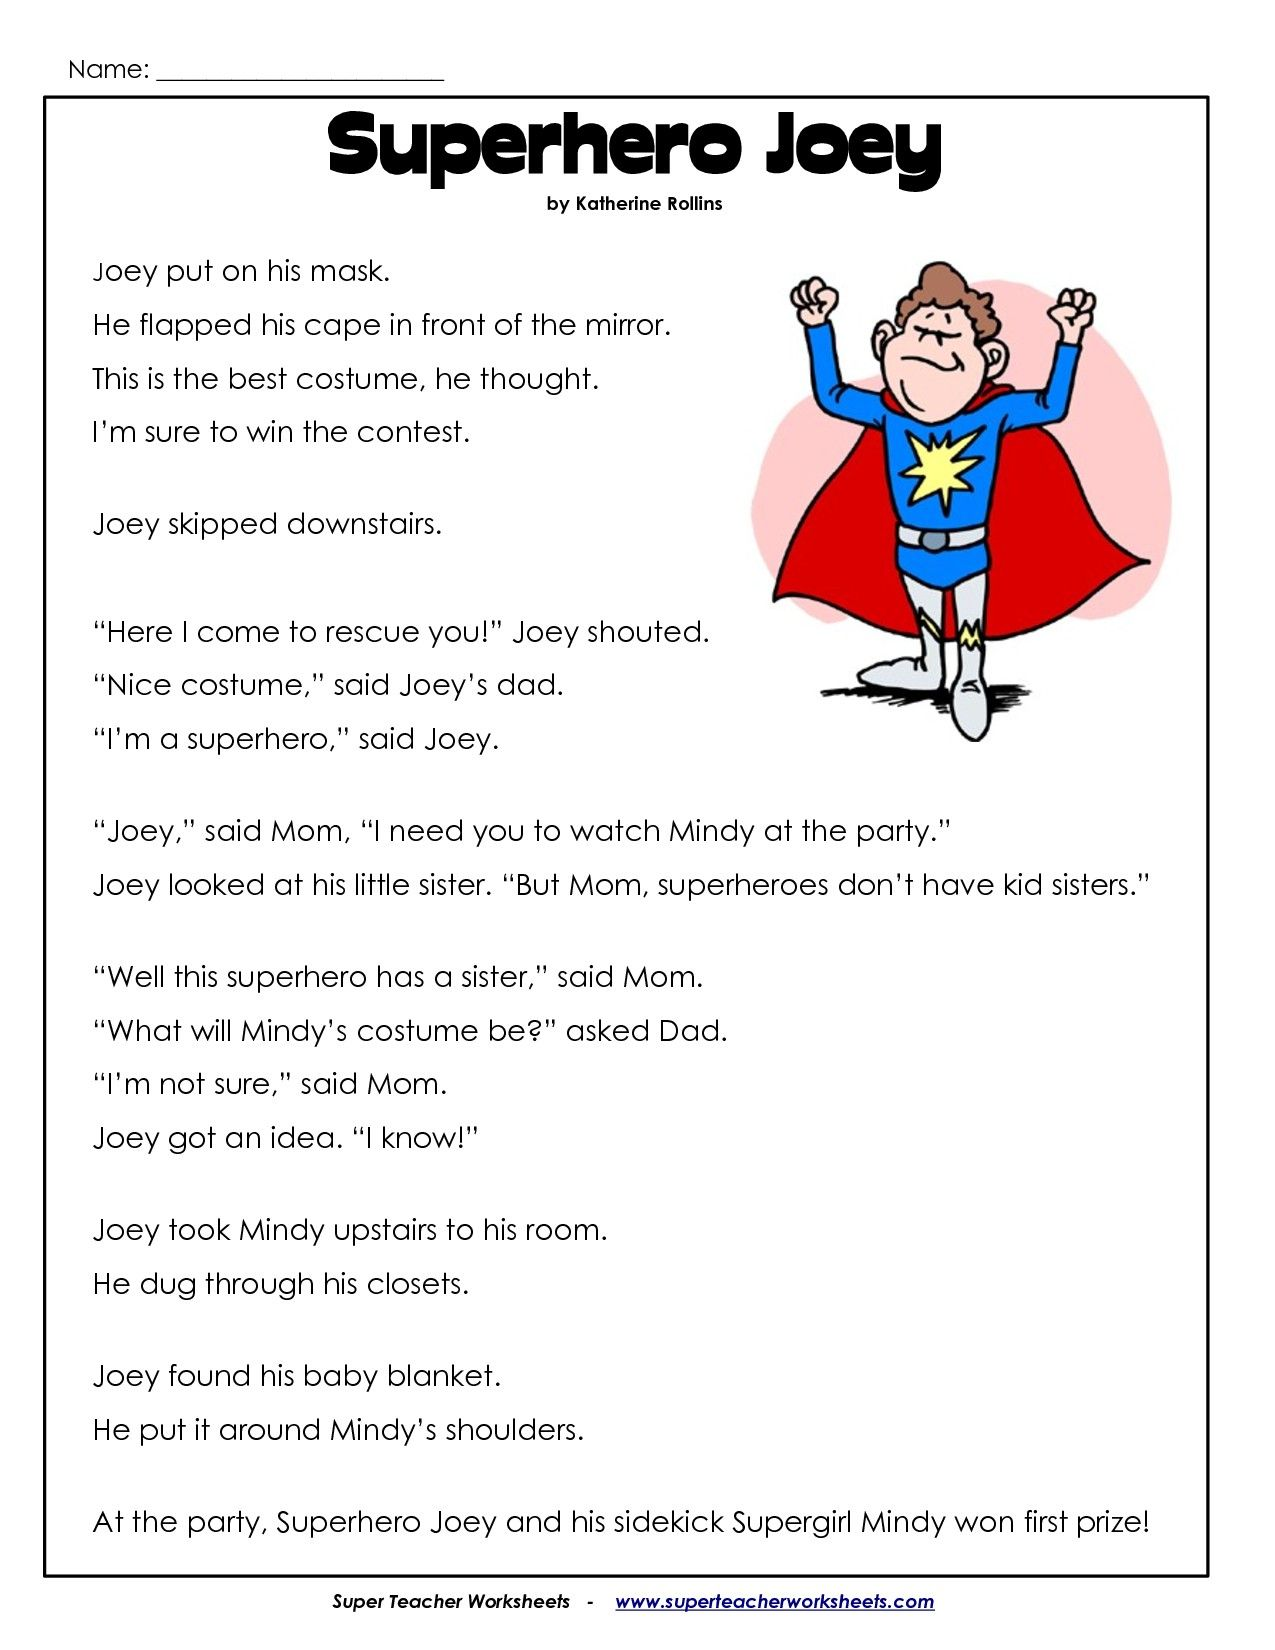 Second Grade Reading Comprehension Worksheet The Cowboy – 2nd Grade Reading Worksheets